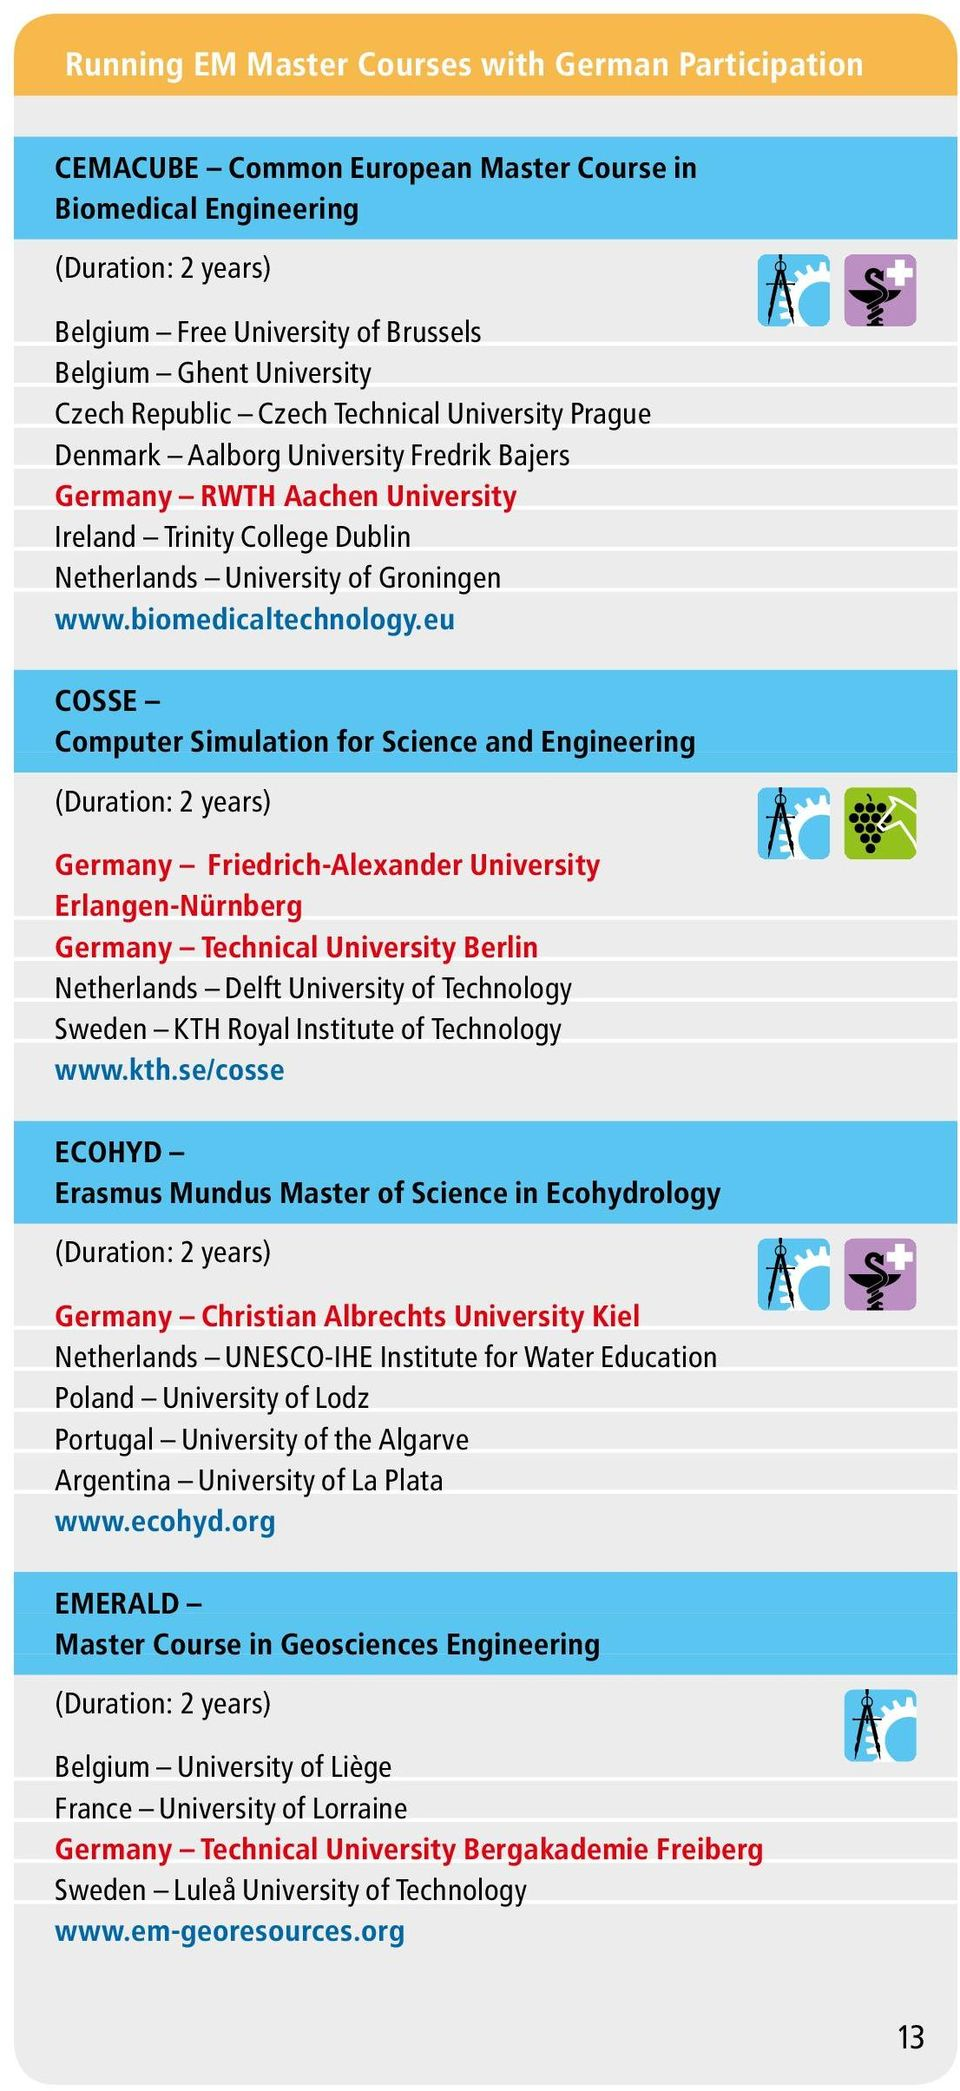 eu COSSE Computer Simulation for Science and Engineering Germany Friedrich-Alexander University Erlangen-Nürnberg Germany Technical University Berlin Netherlands Delft University of Technology Sweden